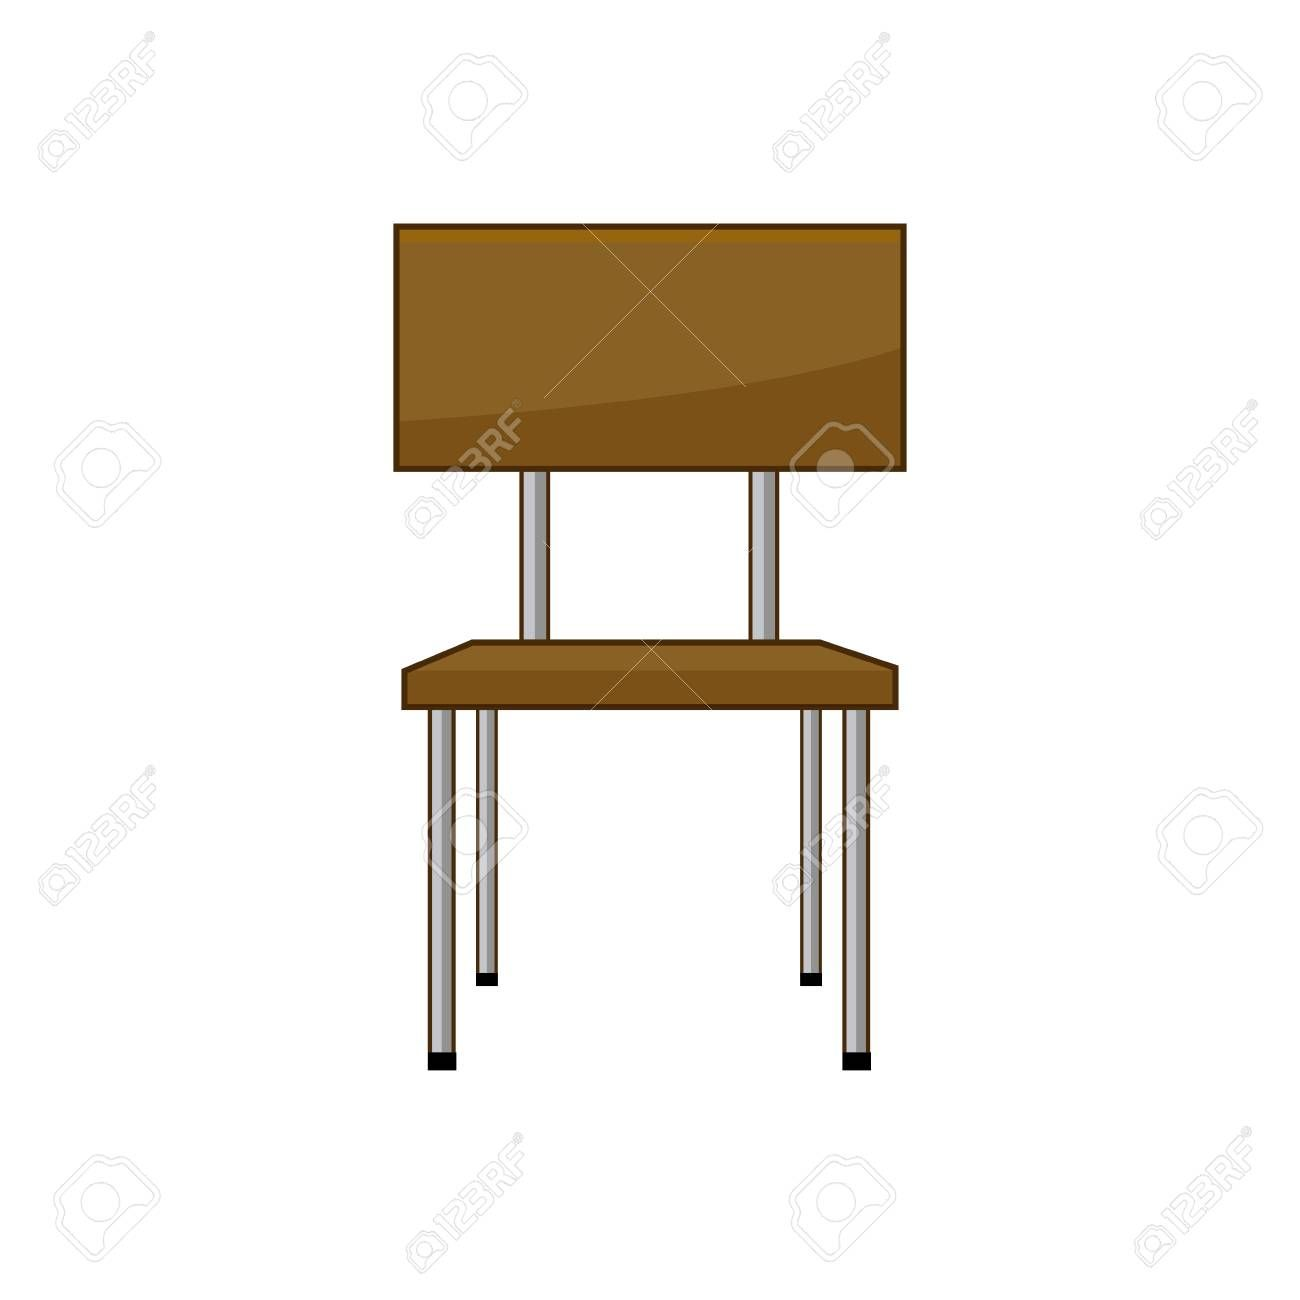 School Student Chair Used In The Classroom Vector Illustration Ad Chair Student School Illustration Vector In 2020 Student Chair Chair Vector Illustration